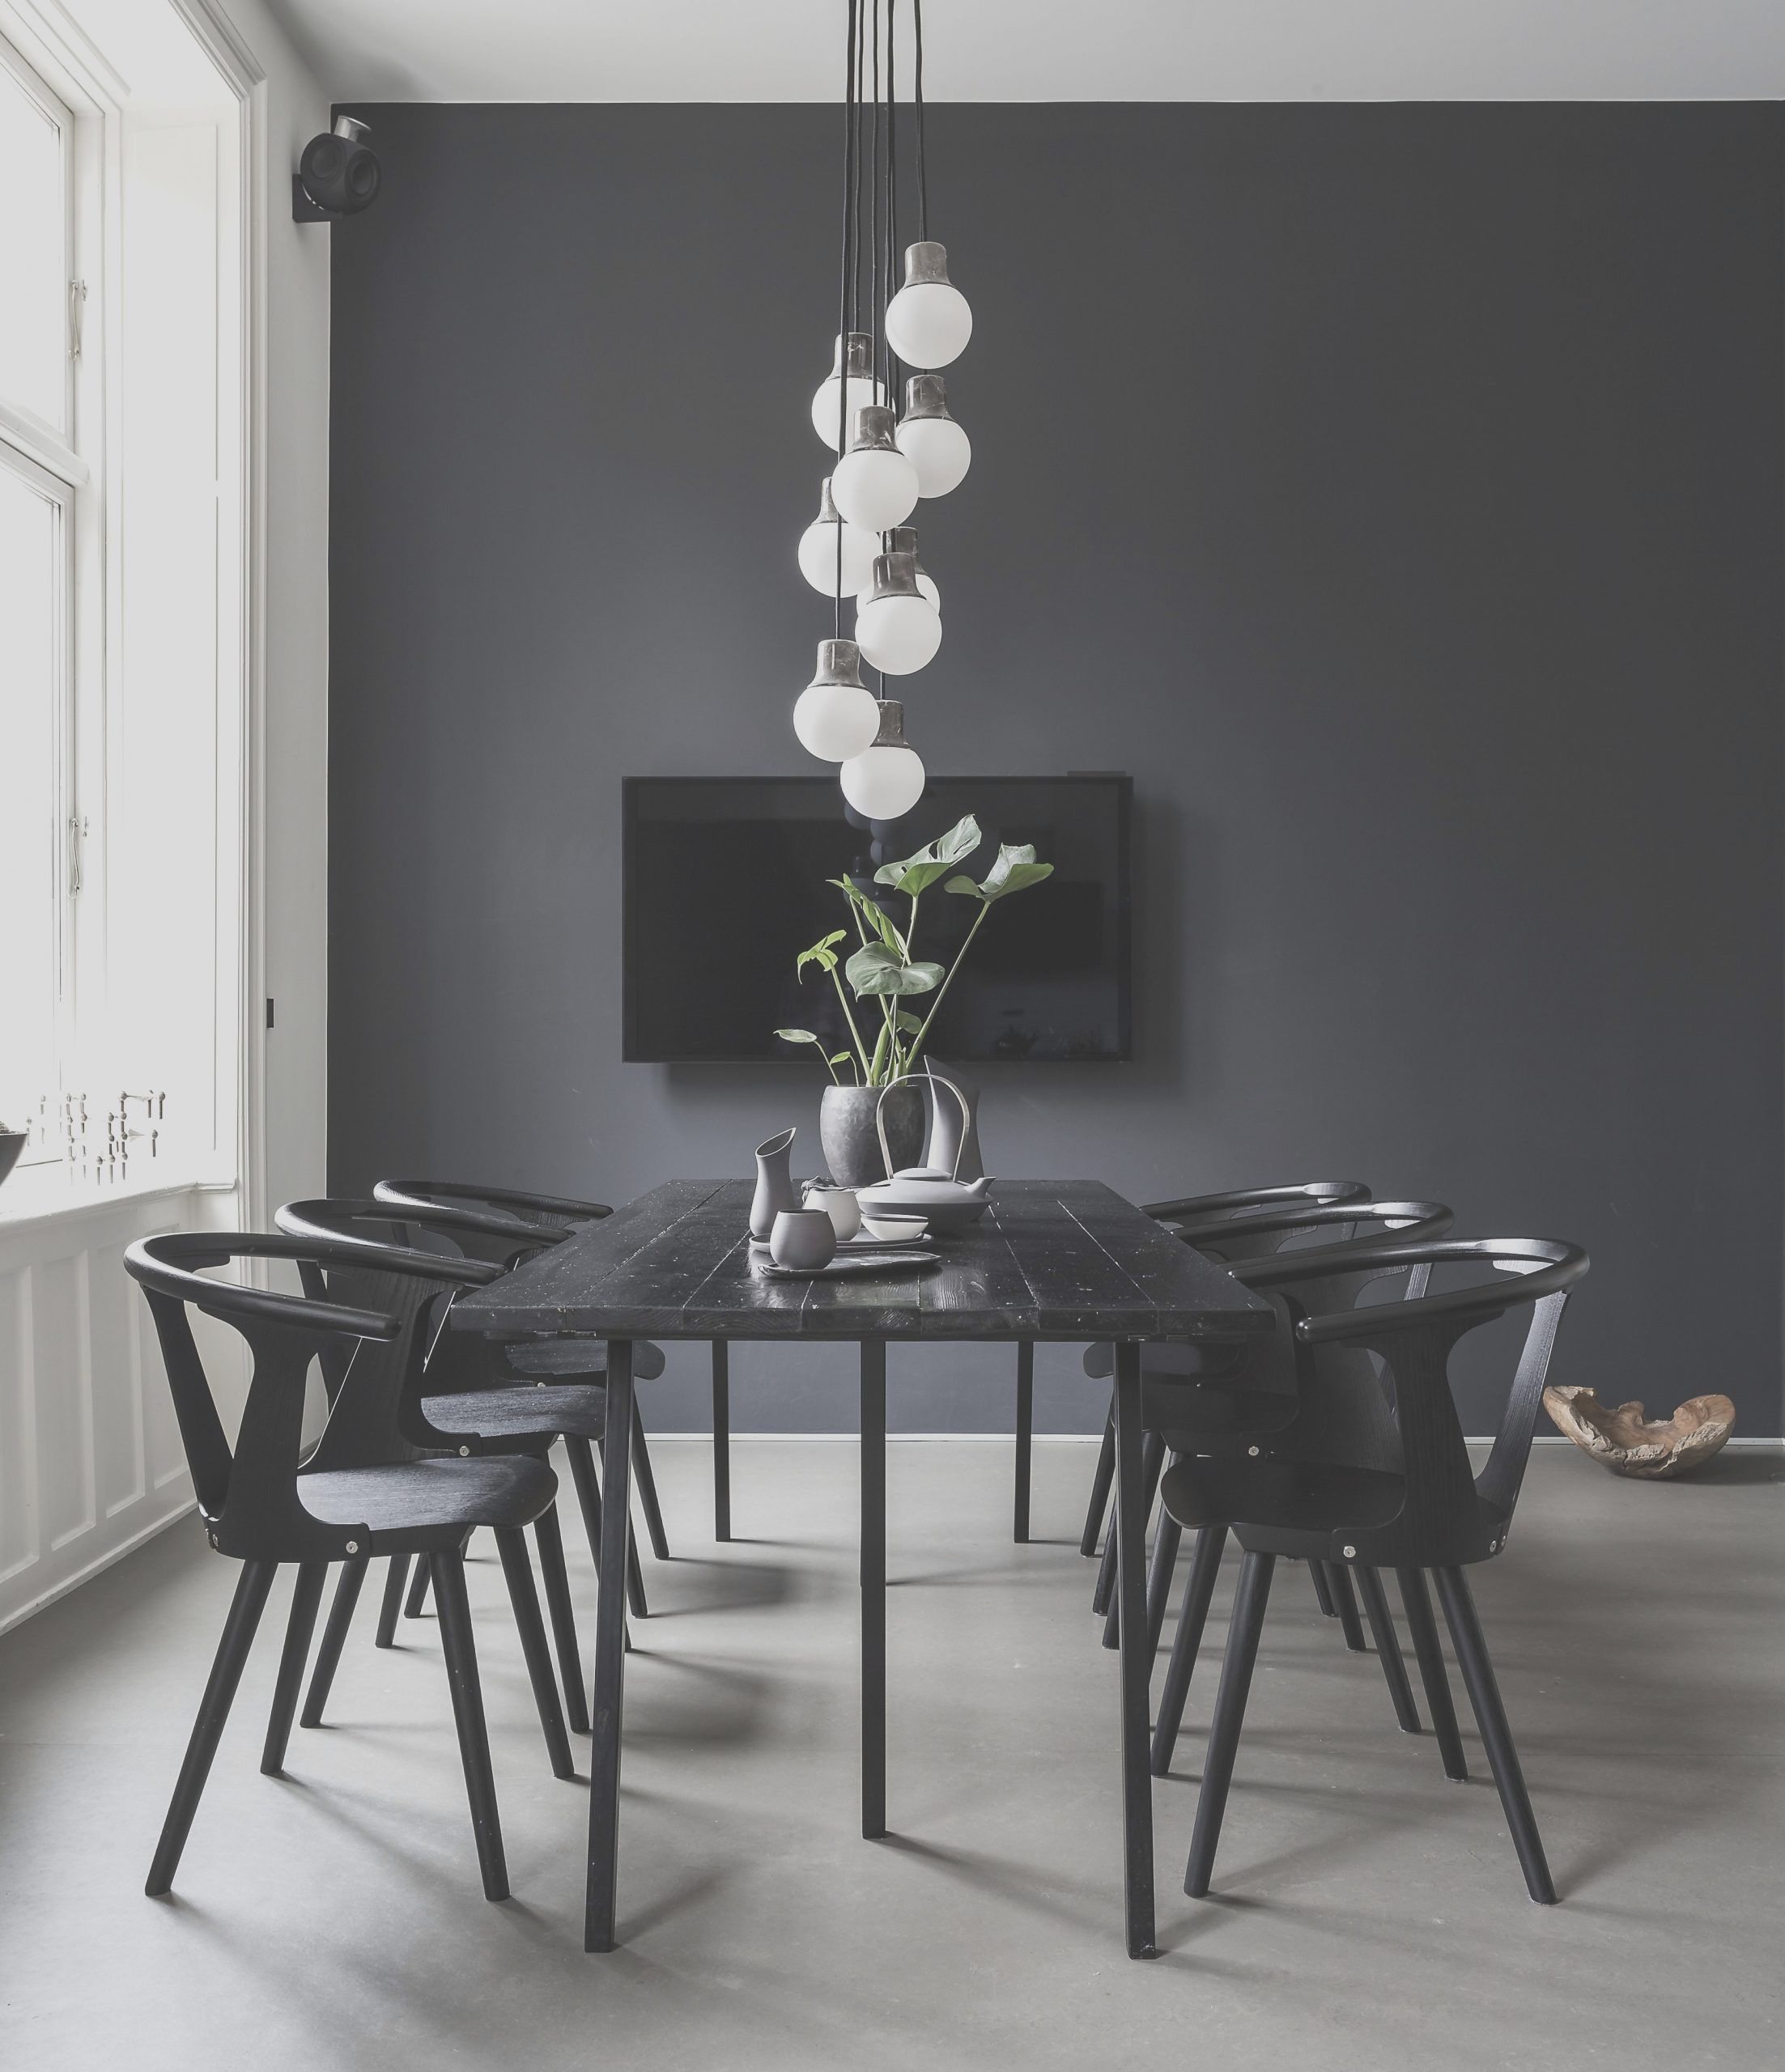 40 Modern Dining Room Design Ideas You Were Looking For In 2021 Minimalist Dining Room Scandinavian Dining Room Modern Dining Room